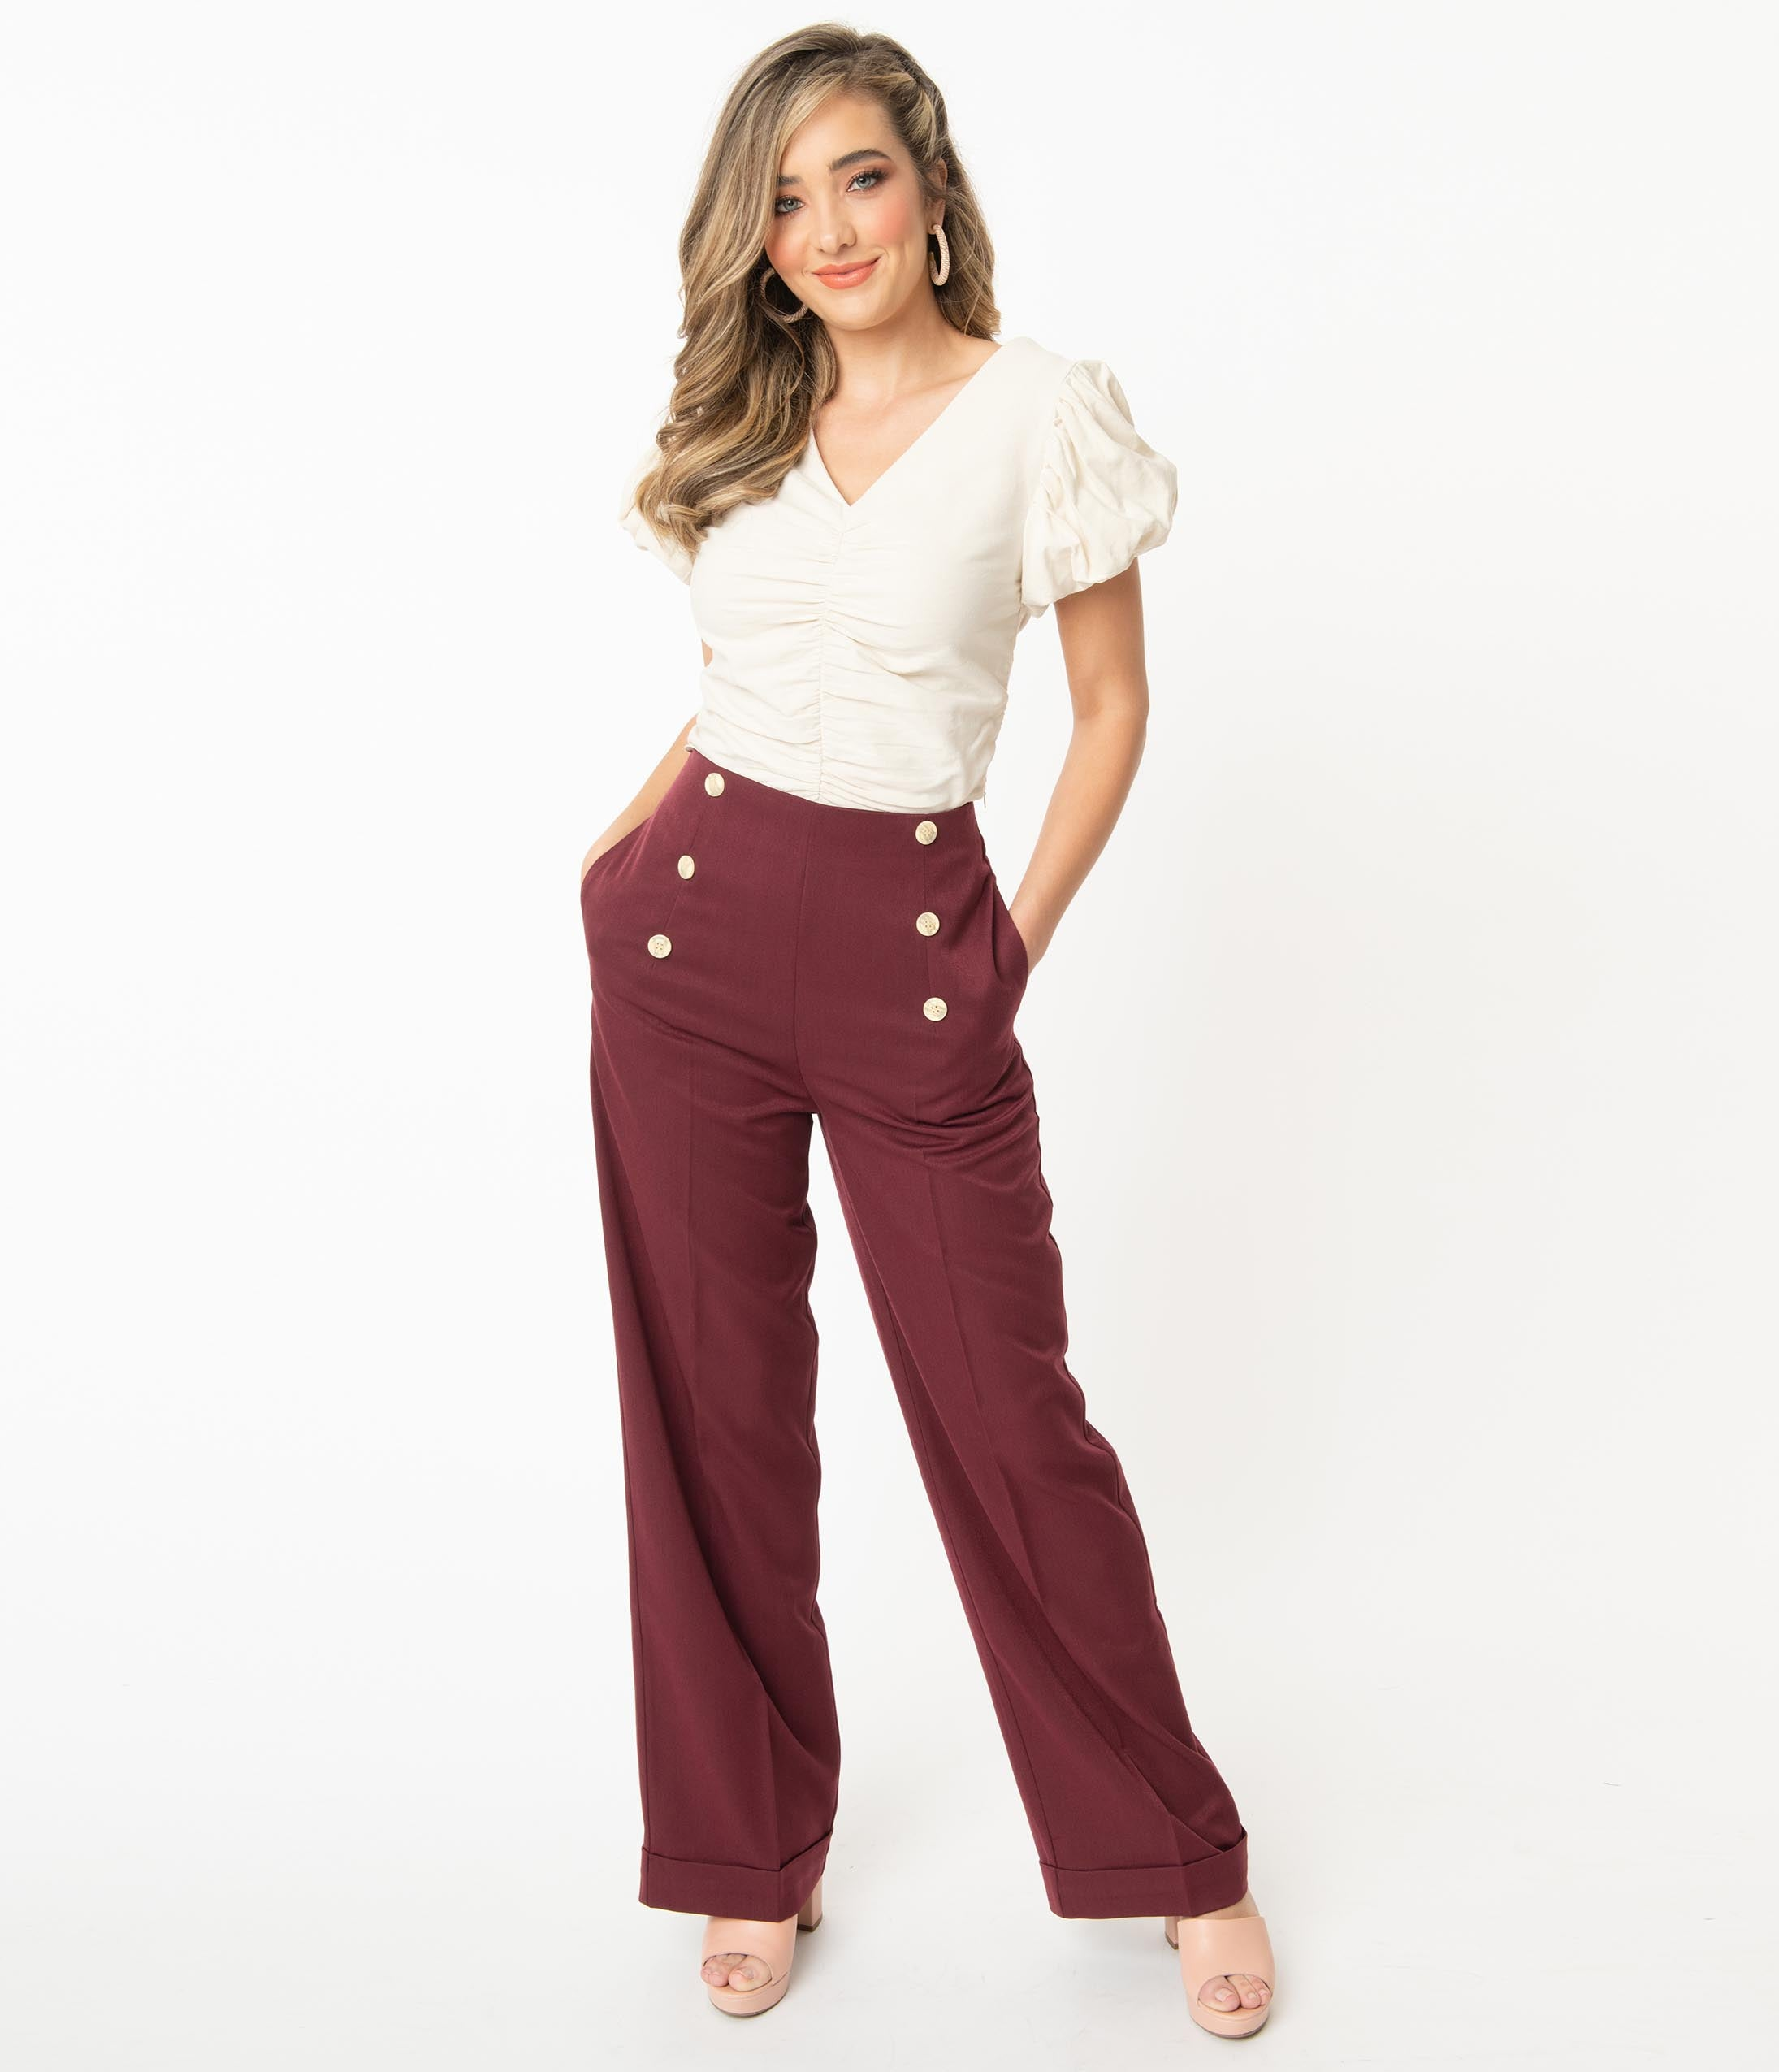 70s Clothes | Hippie Clothes & Outfits 1970S Style Burgundy Day To Night High Waist Pants $58.00 AT vintagedancer.com